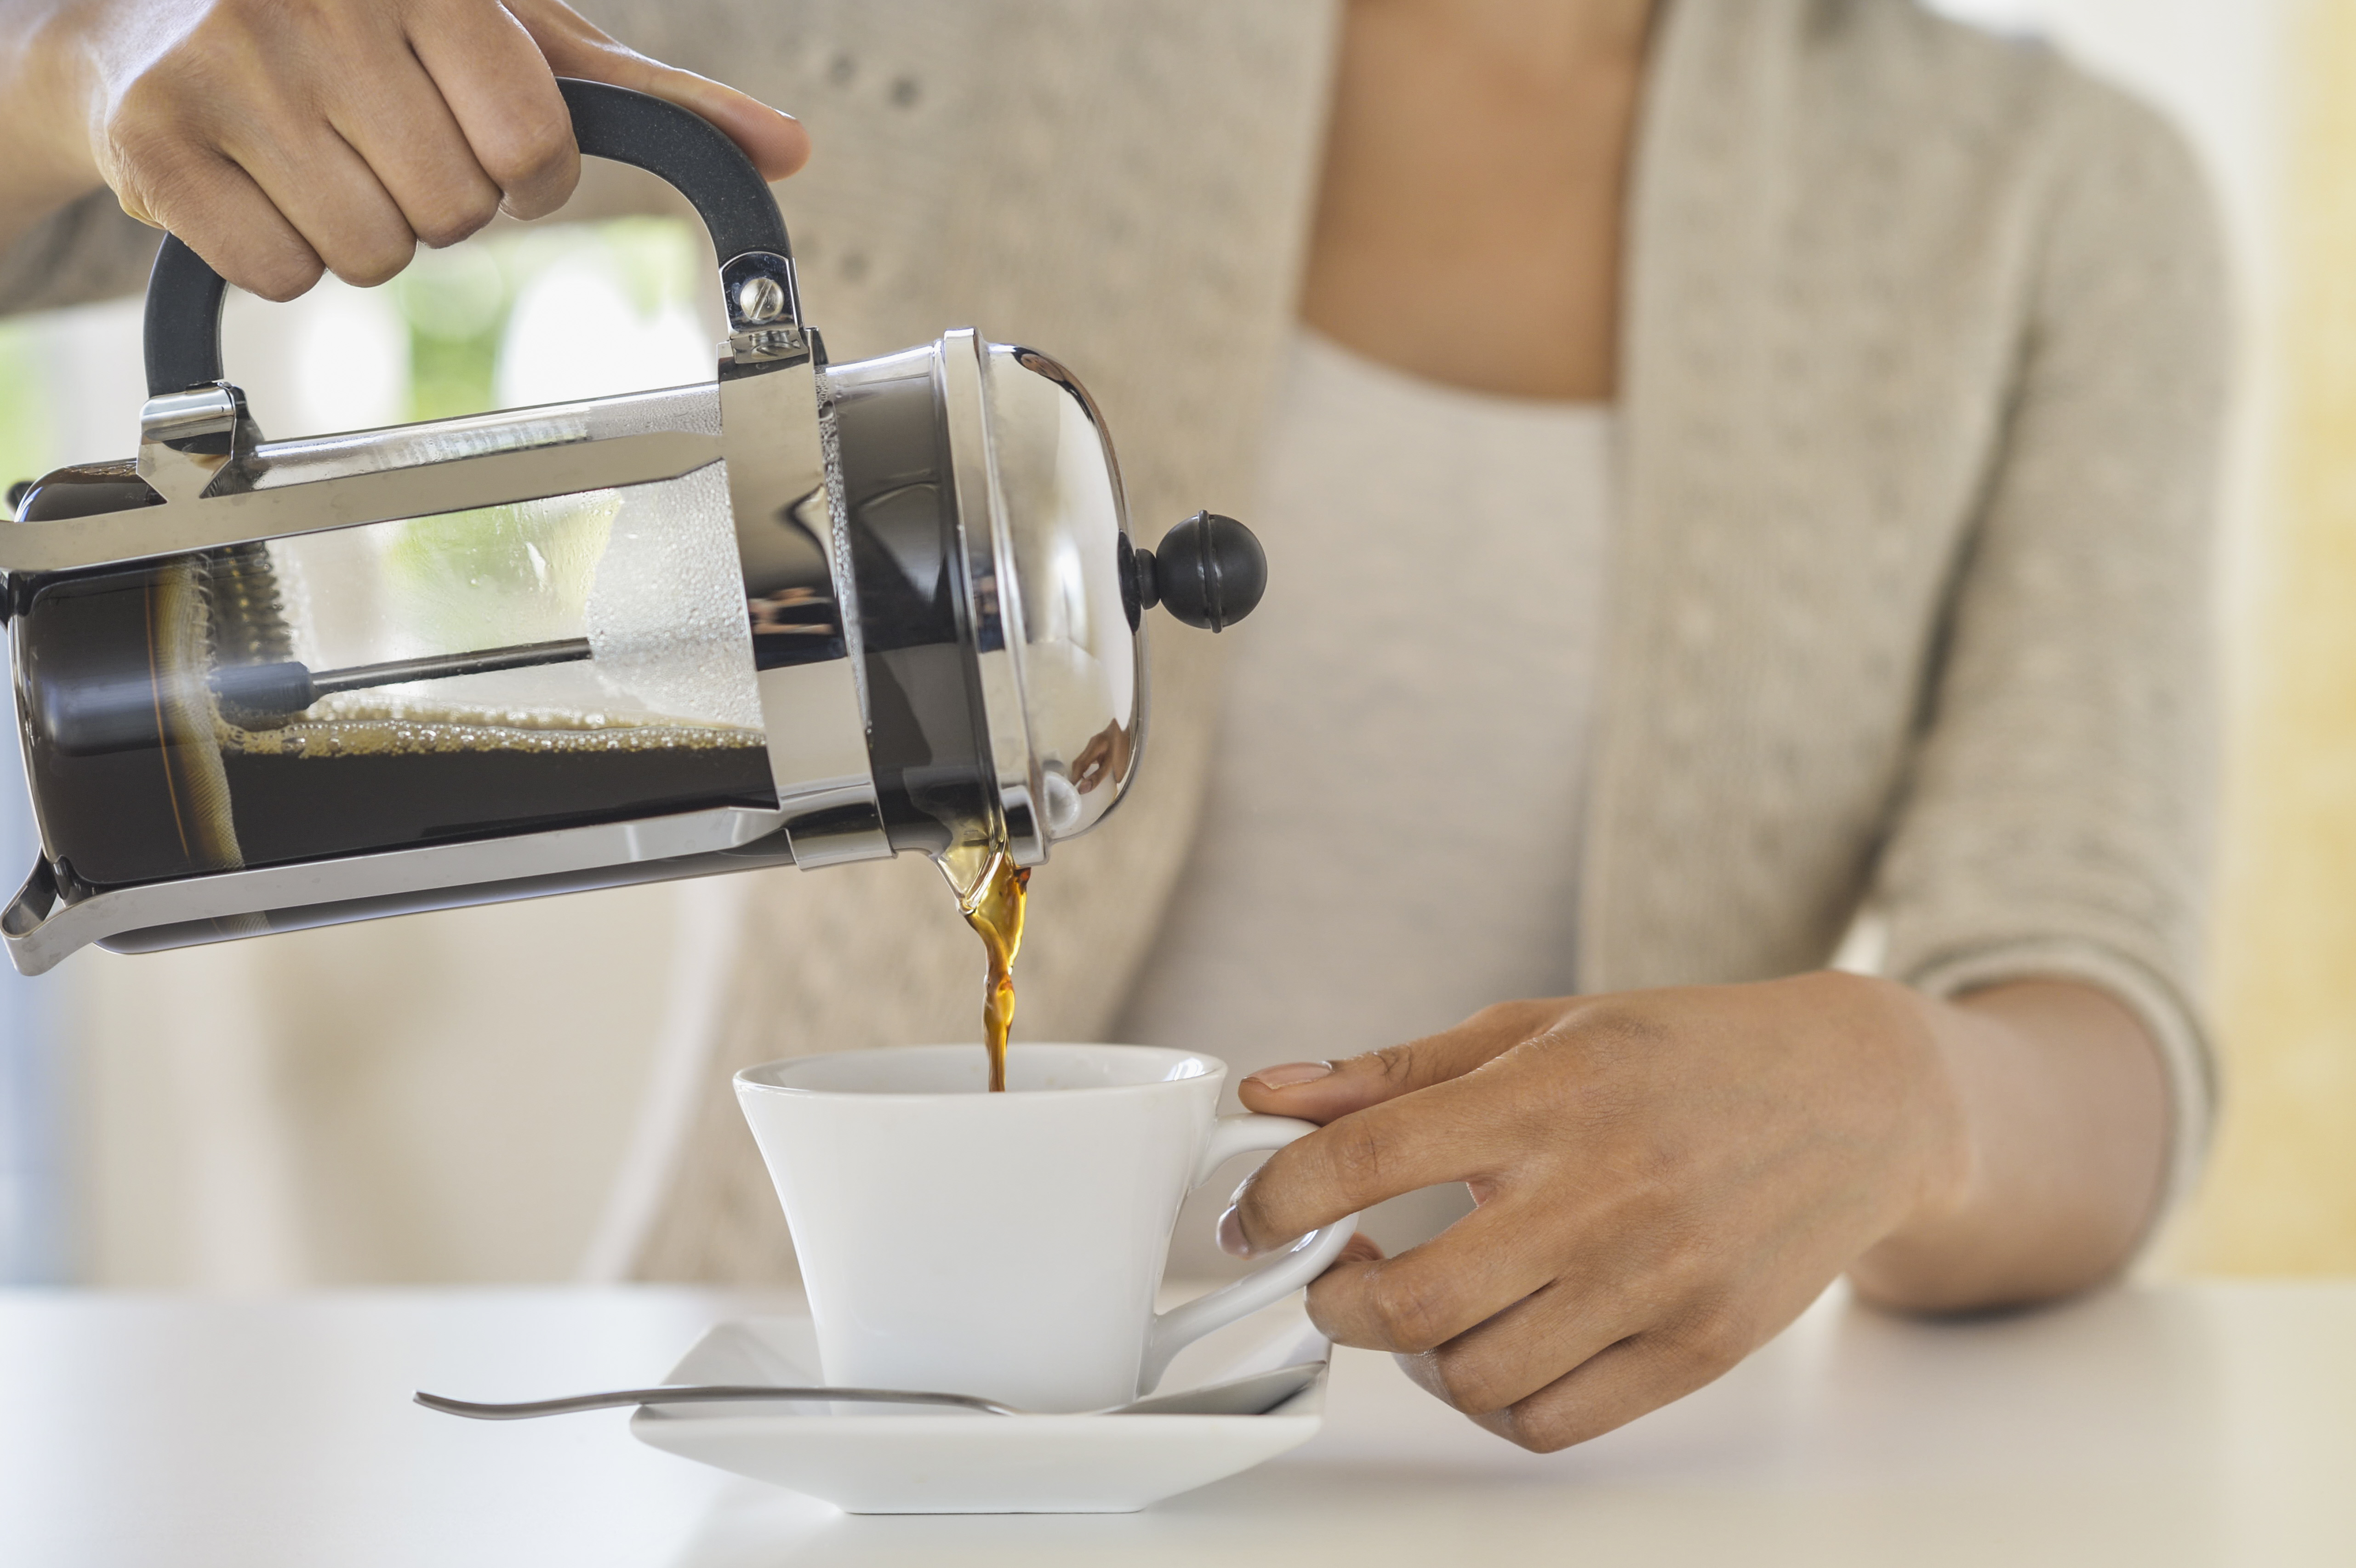 Woman pouring French pressed coffee into a mug in the morning.